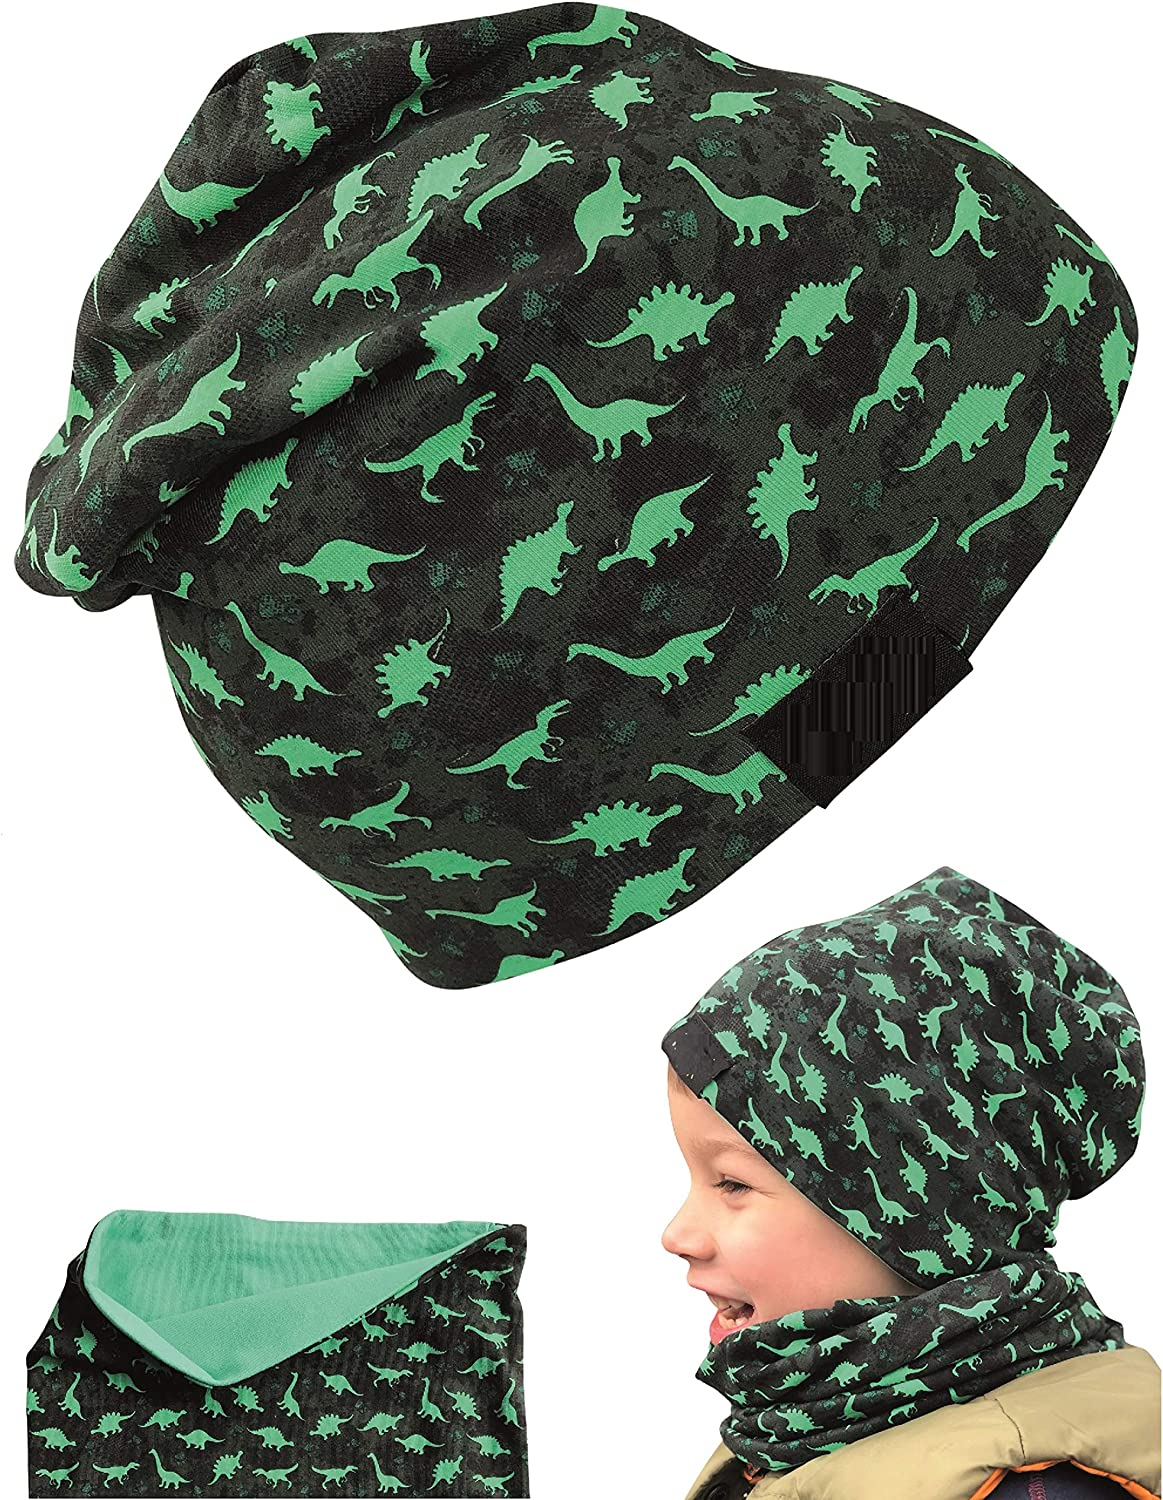 HECKBO Children boy Beanie hat & Loop Scarf Set - Suitable for Spring, Summer, Fall - Reversible hat Dinosaur - 2 to 7 Years - 95% Cotton - Soft & Easy-Care Stretch Material Green, Black